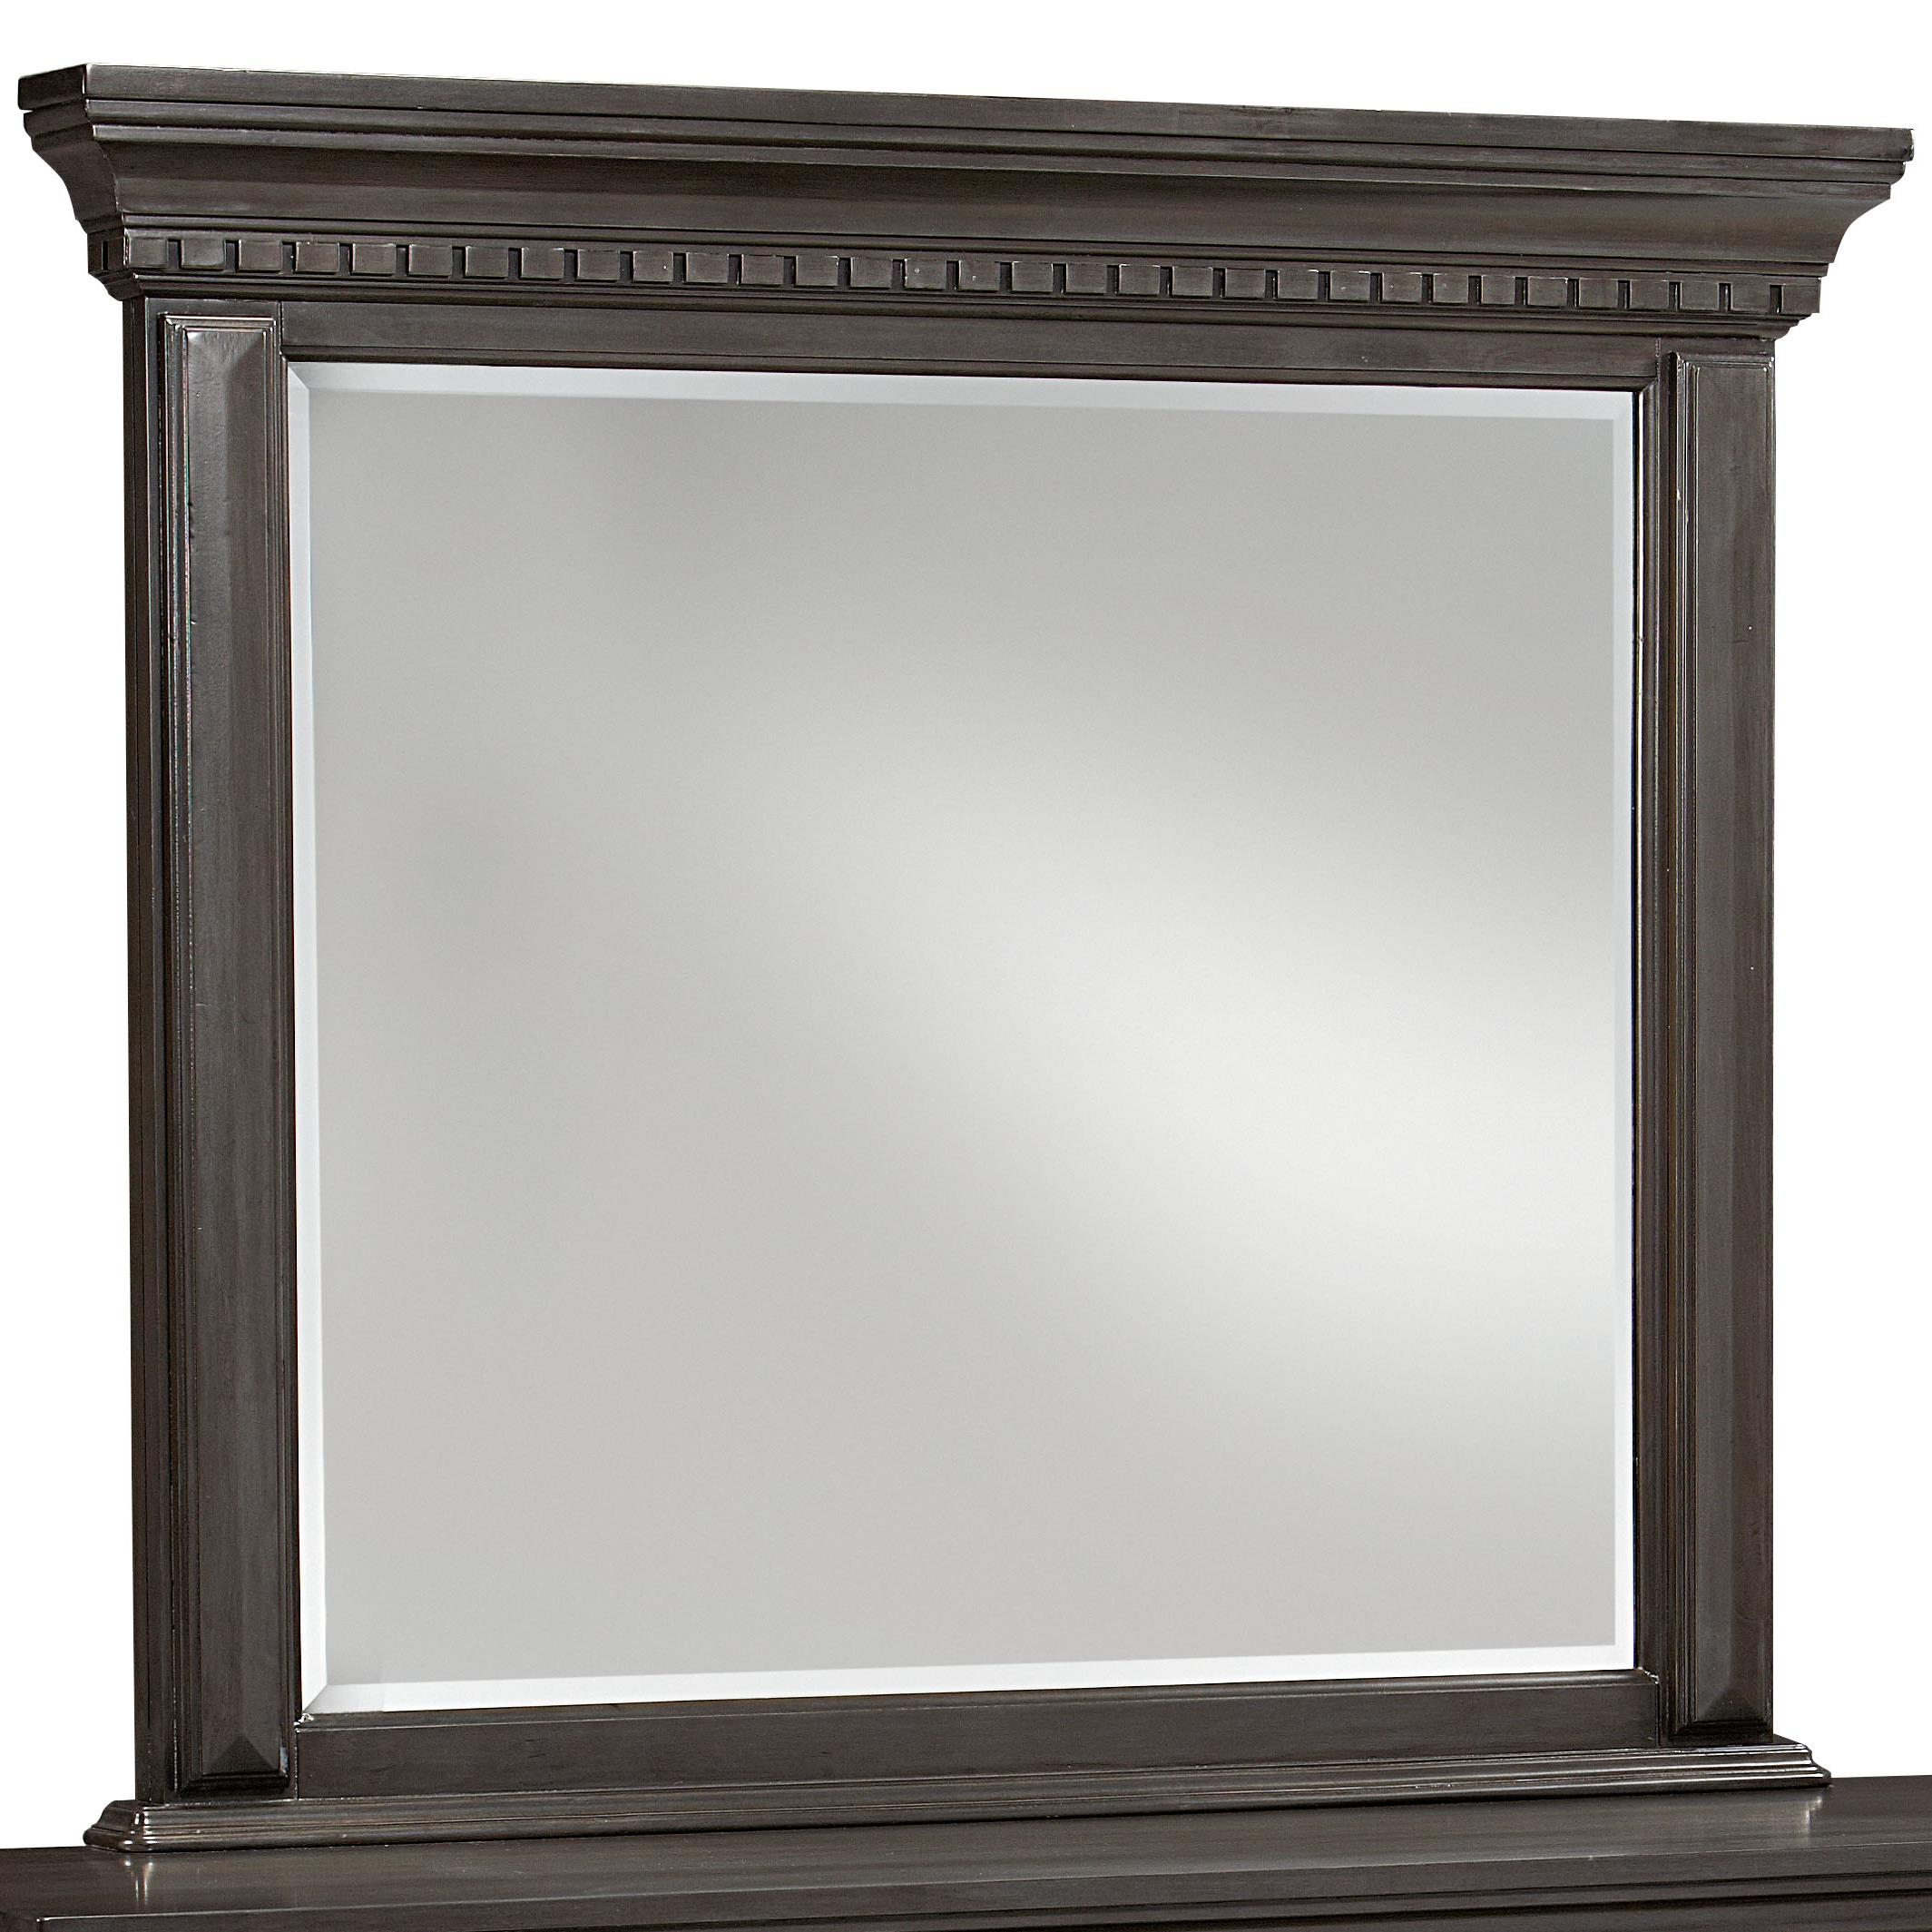 Standard Furniture Garrison Bedroom Mirror                                   - Item Number: 86308